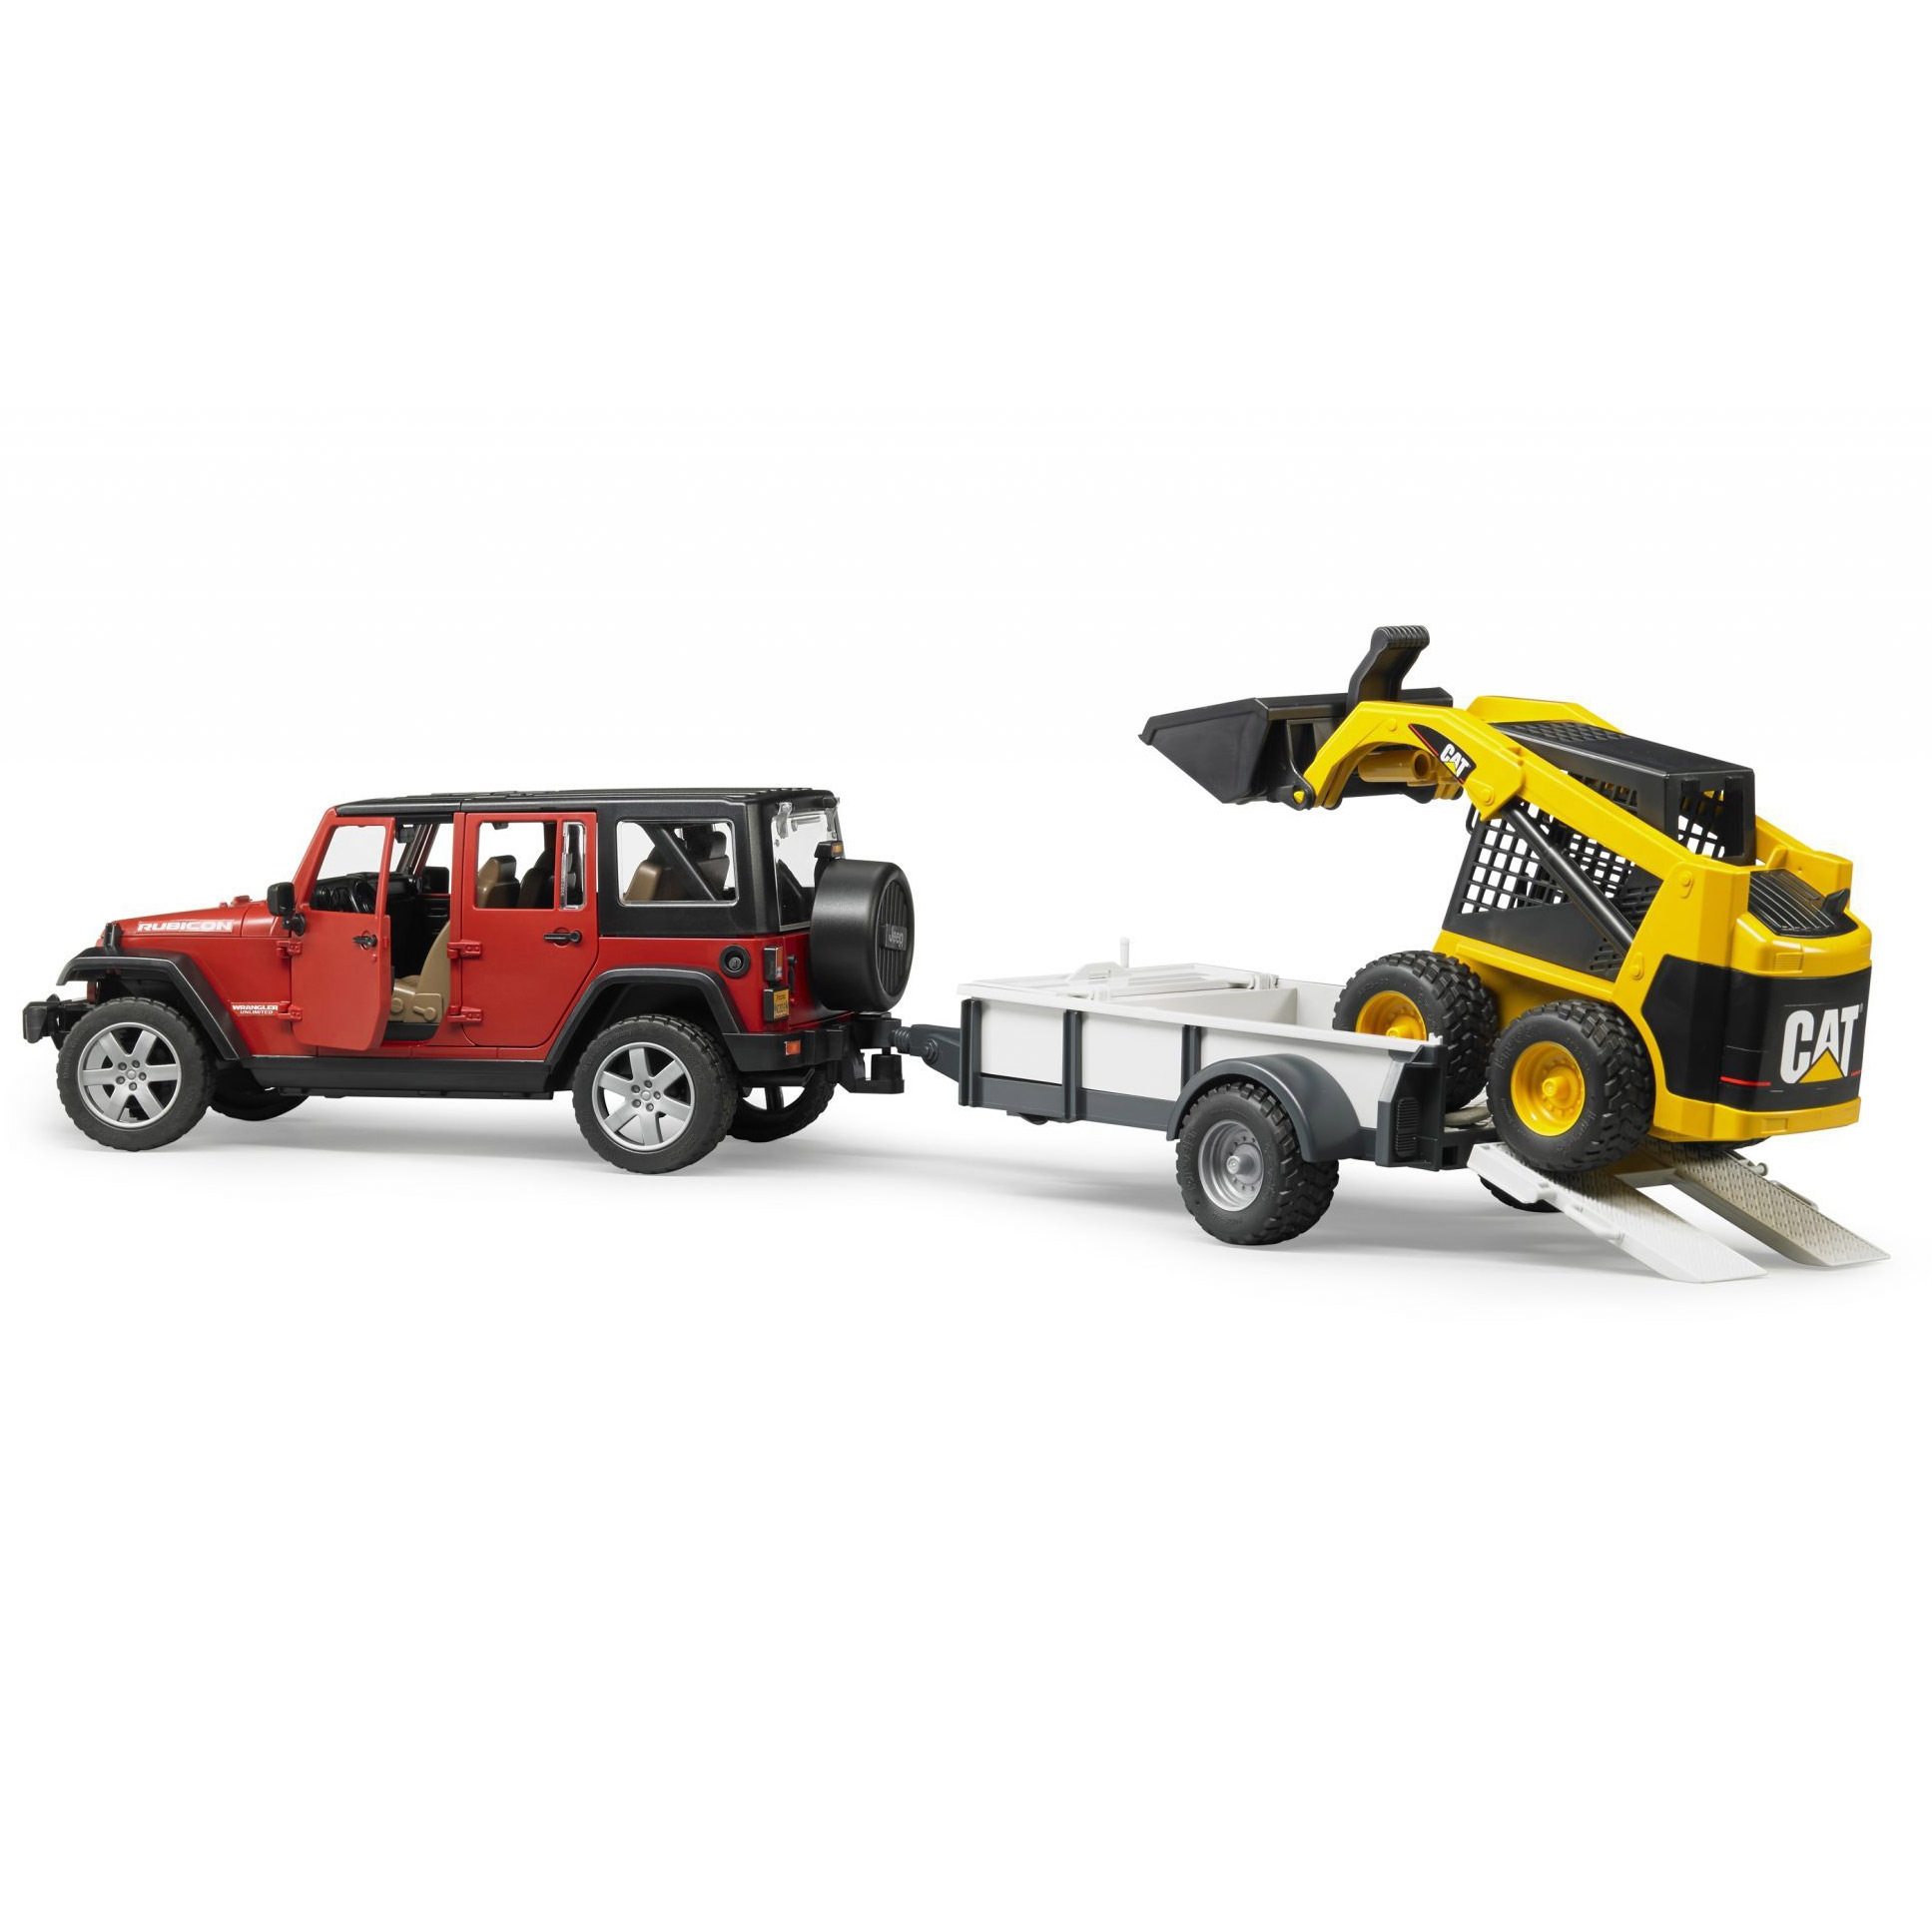 Jeep Wrangler Construction Bruder 02925 Unlimited Rubicon With Qty